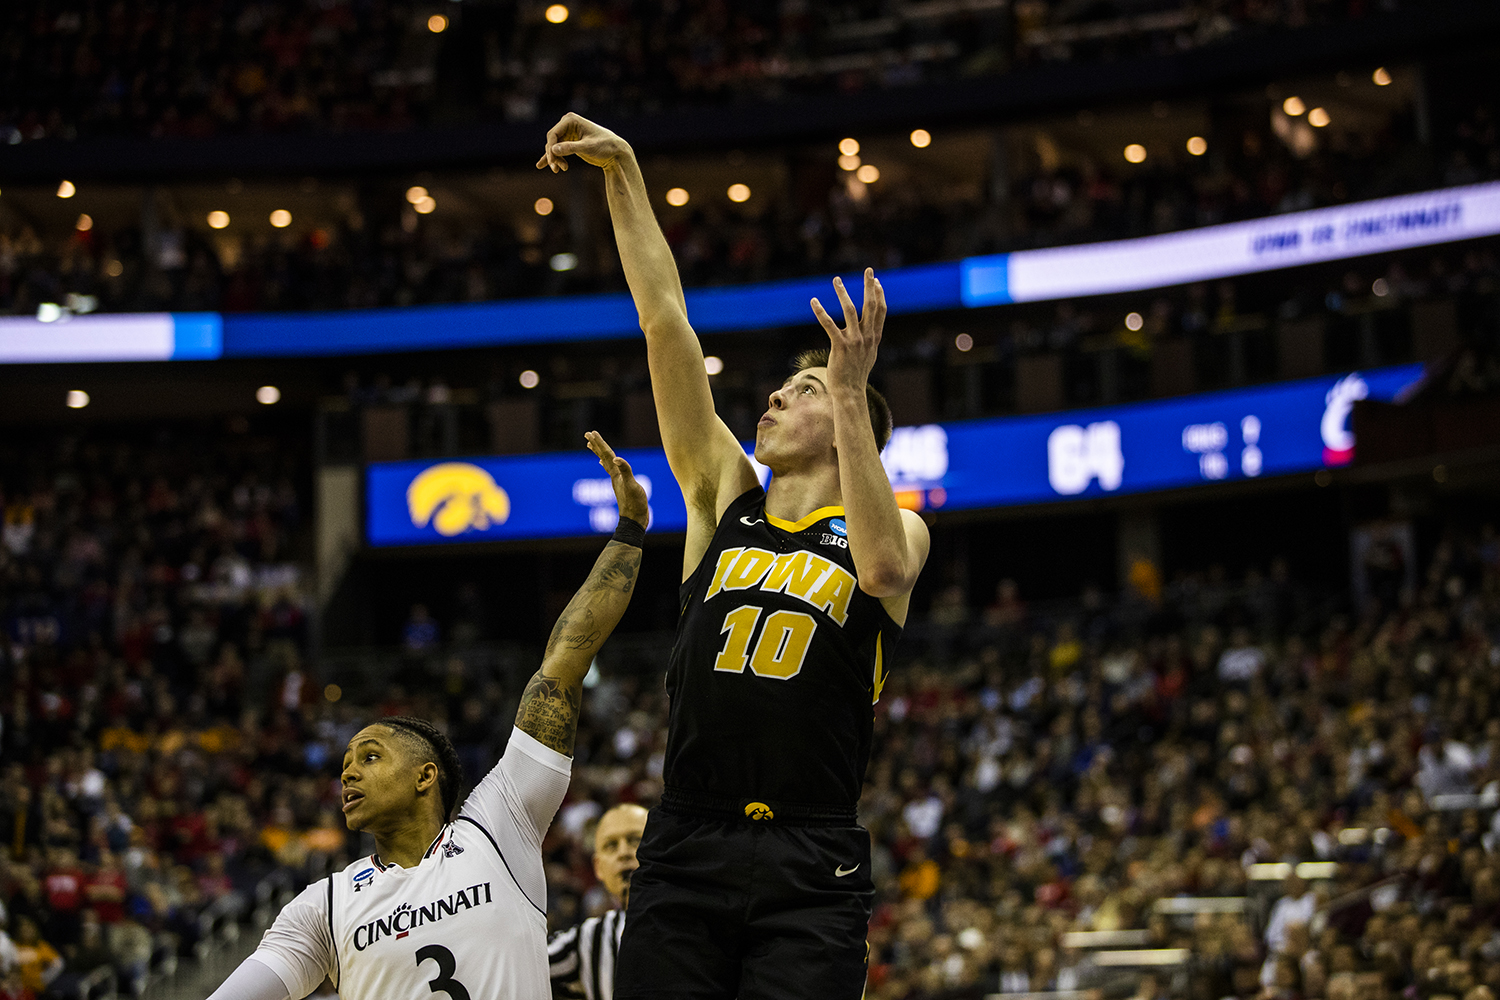 Iowa guard Joe Wieskamp shoots a three-pointer in the last couple minutes of the NCAA game against Cincinnati at Nationwide Arena on Friday, March 22, 2019. The Hawkeyes defeated the Bearcats 79-72.